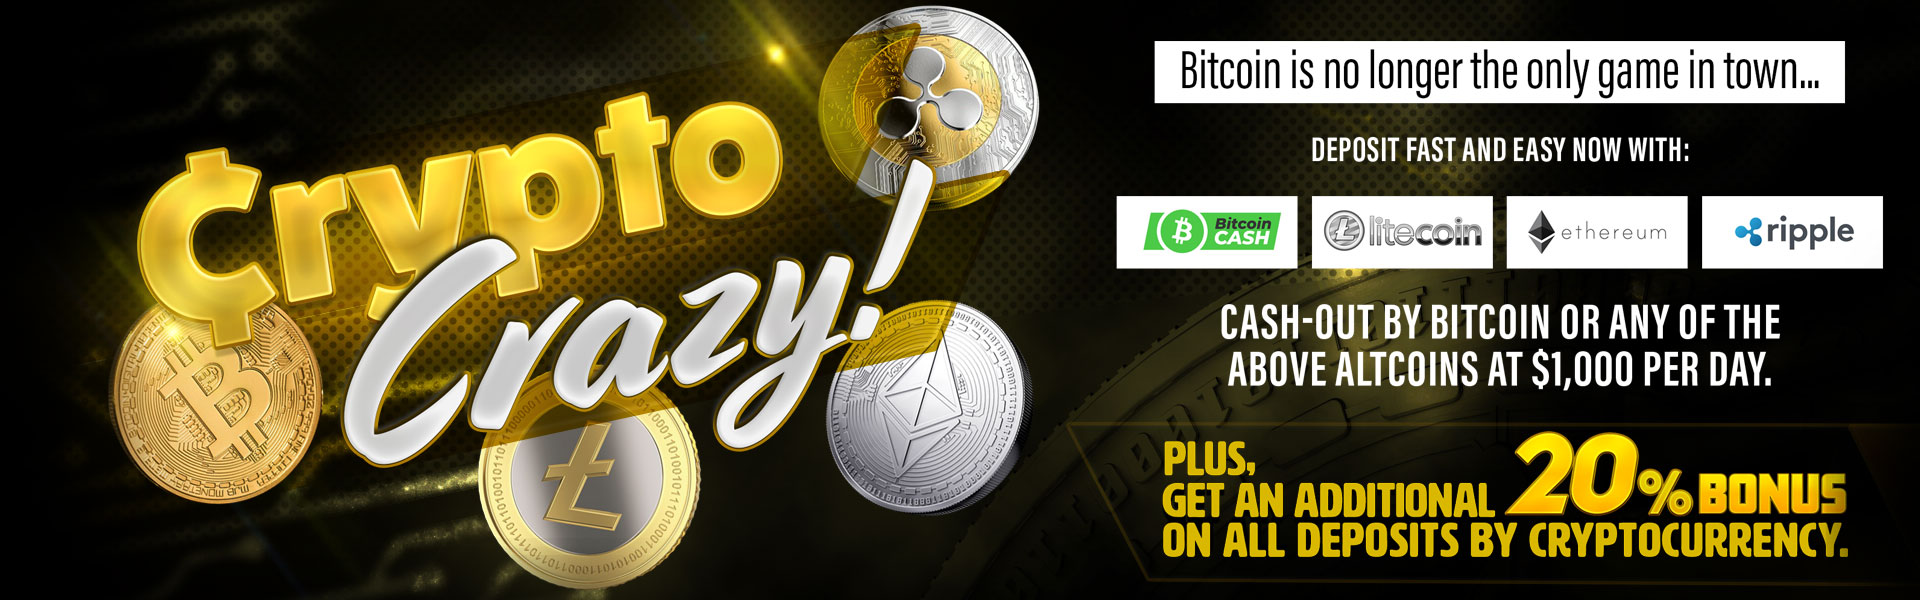 CryptoCrazy Promotion